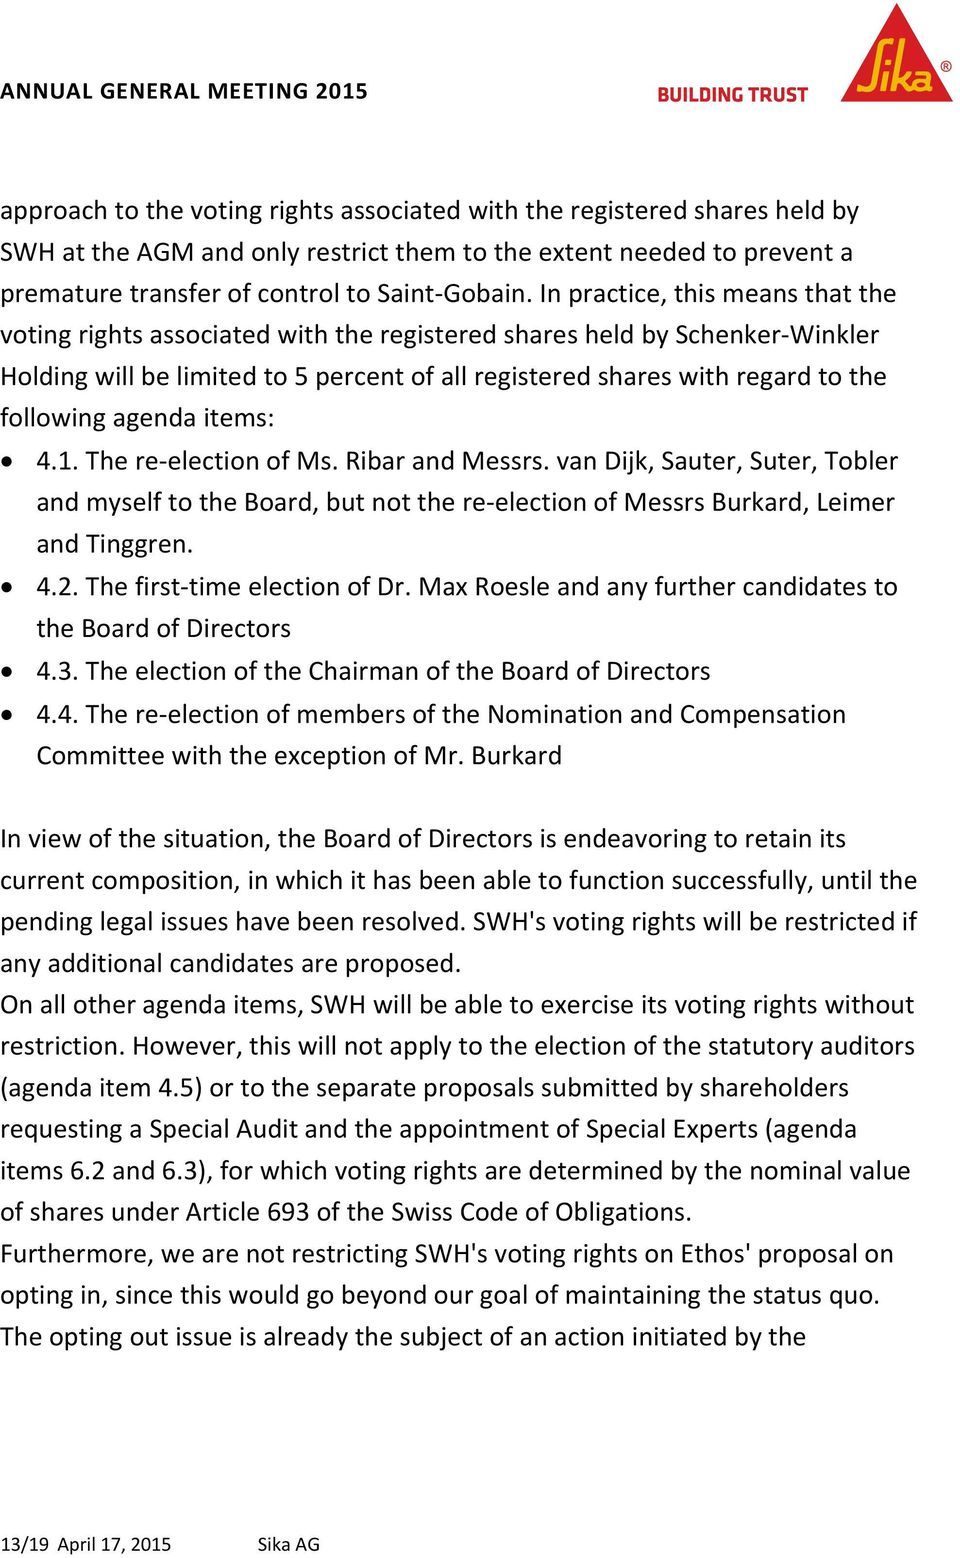 following agenda items: 4.1. The re election of Ms. Ribar and Messrs. van Dijk, Sauter, Suter, Tobler and myself to the Board, but not the re election of Messrs Burkard, Leimer and Tinggren. 4.2.